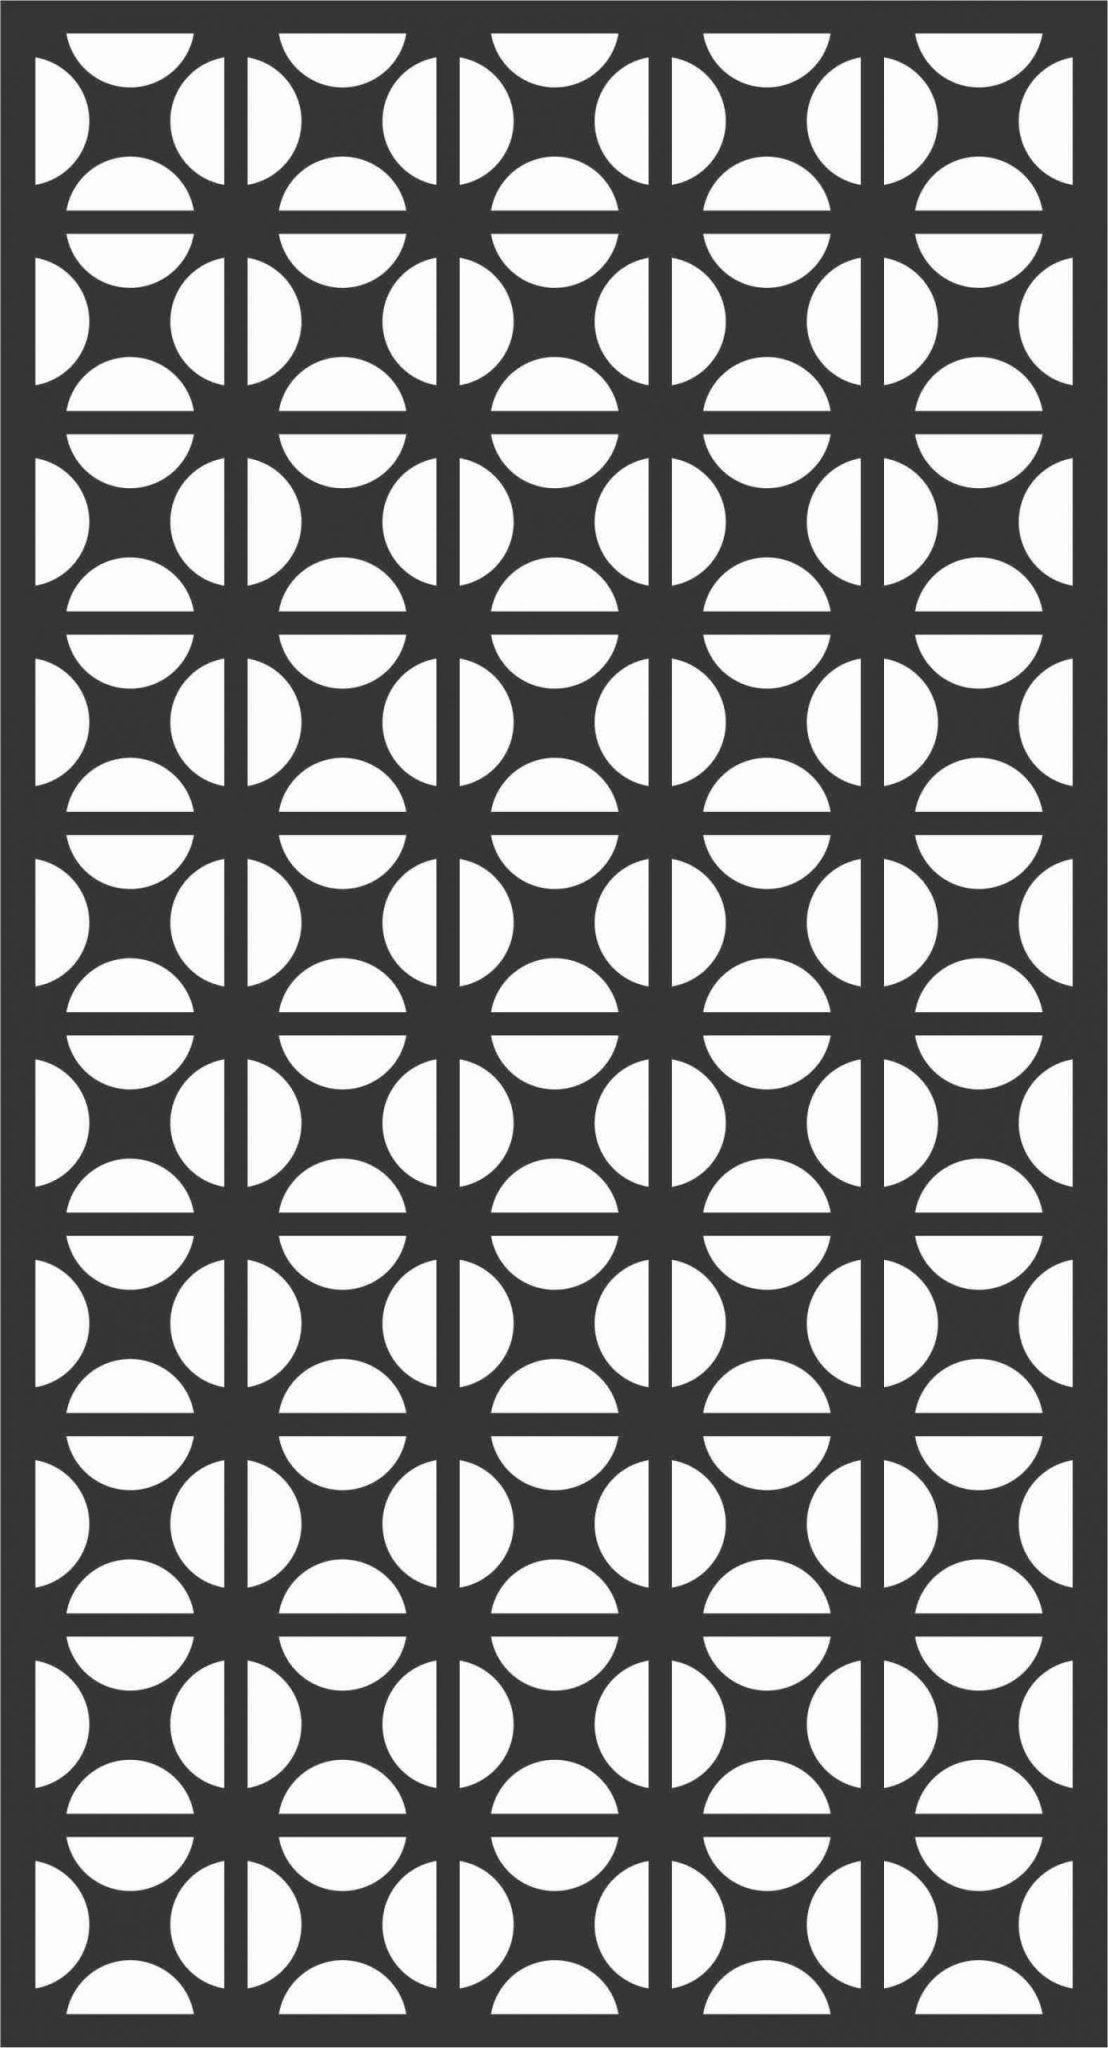 Floral Screen Patterns Design 31 Free DXF File